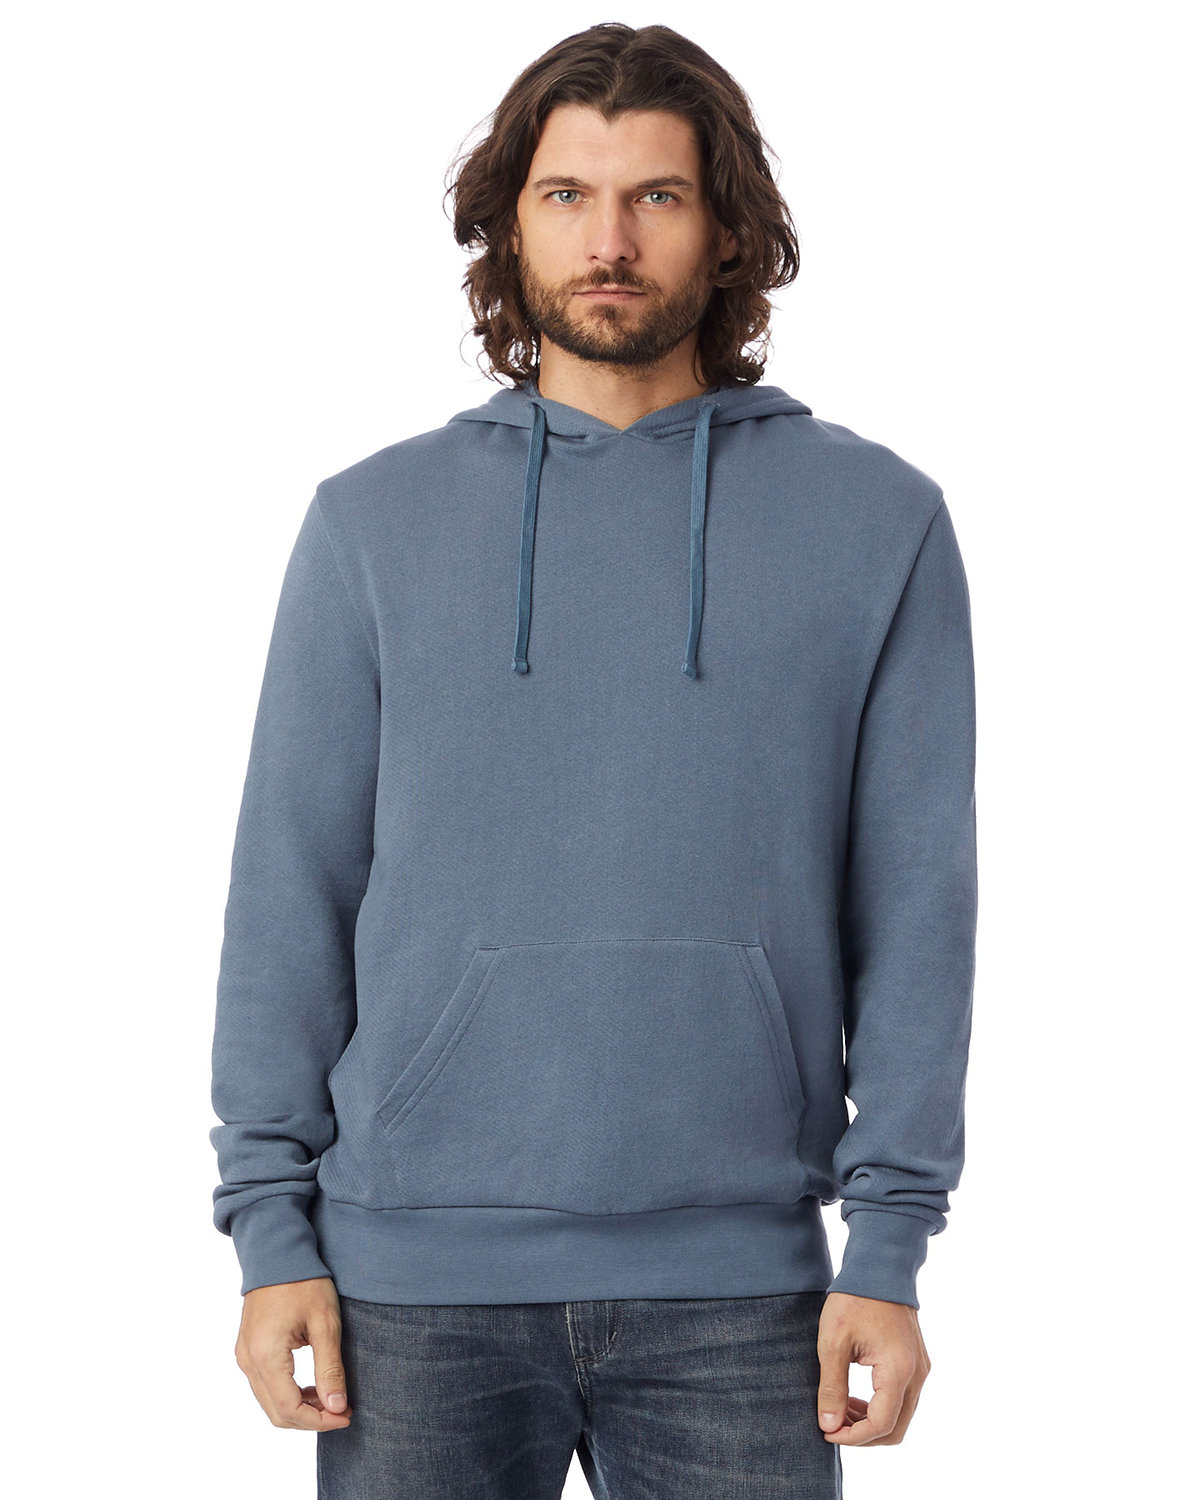 Alternative Unisex 6.5 oz., Challenger Washed French Terry Pullover Hooded Sweatshirt WASHED DENIM